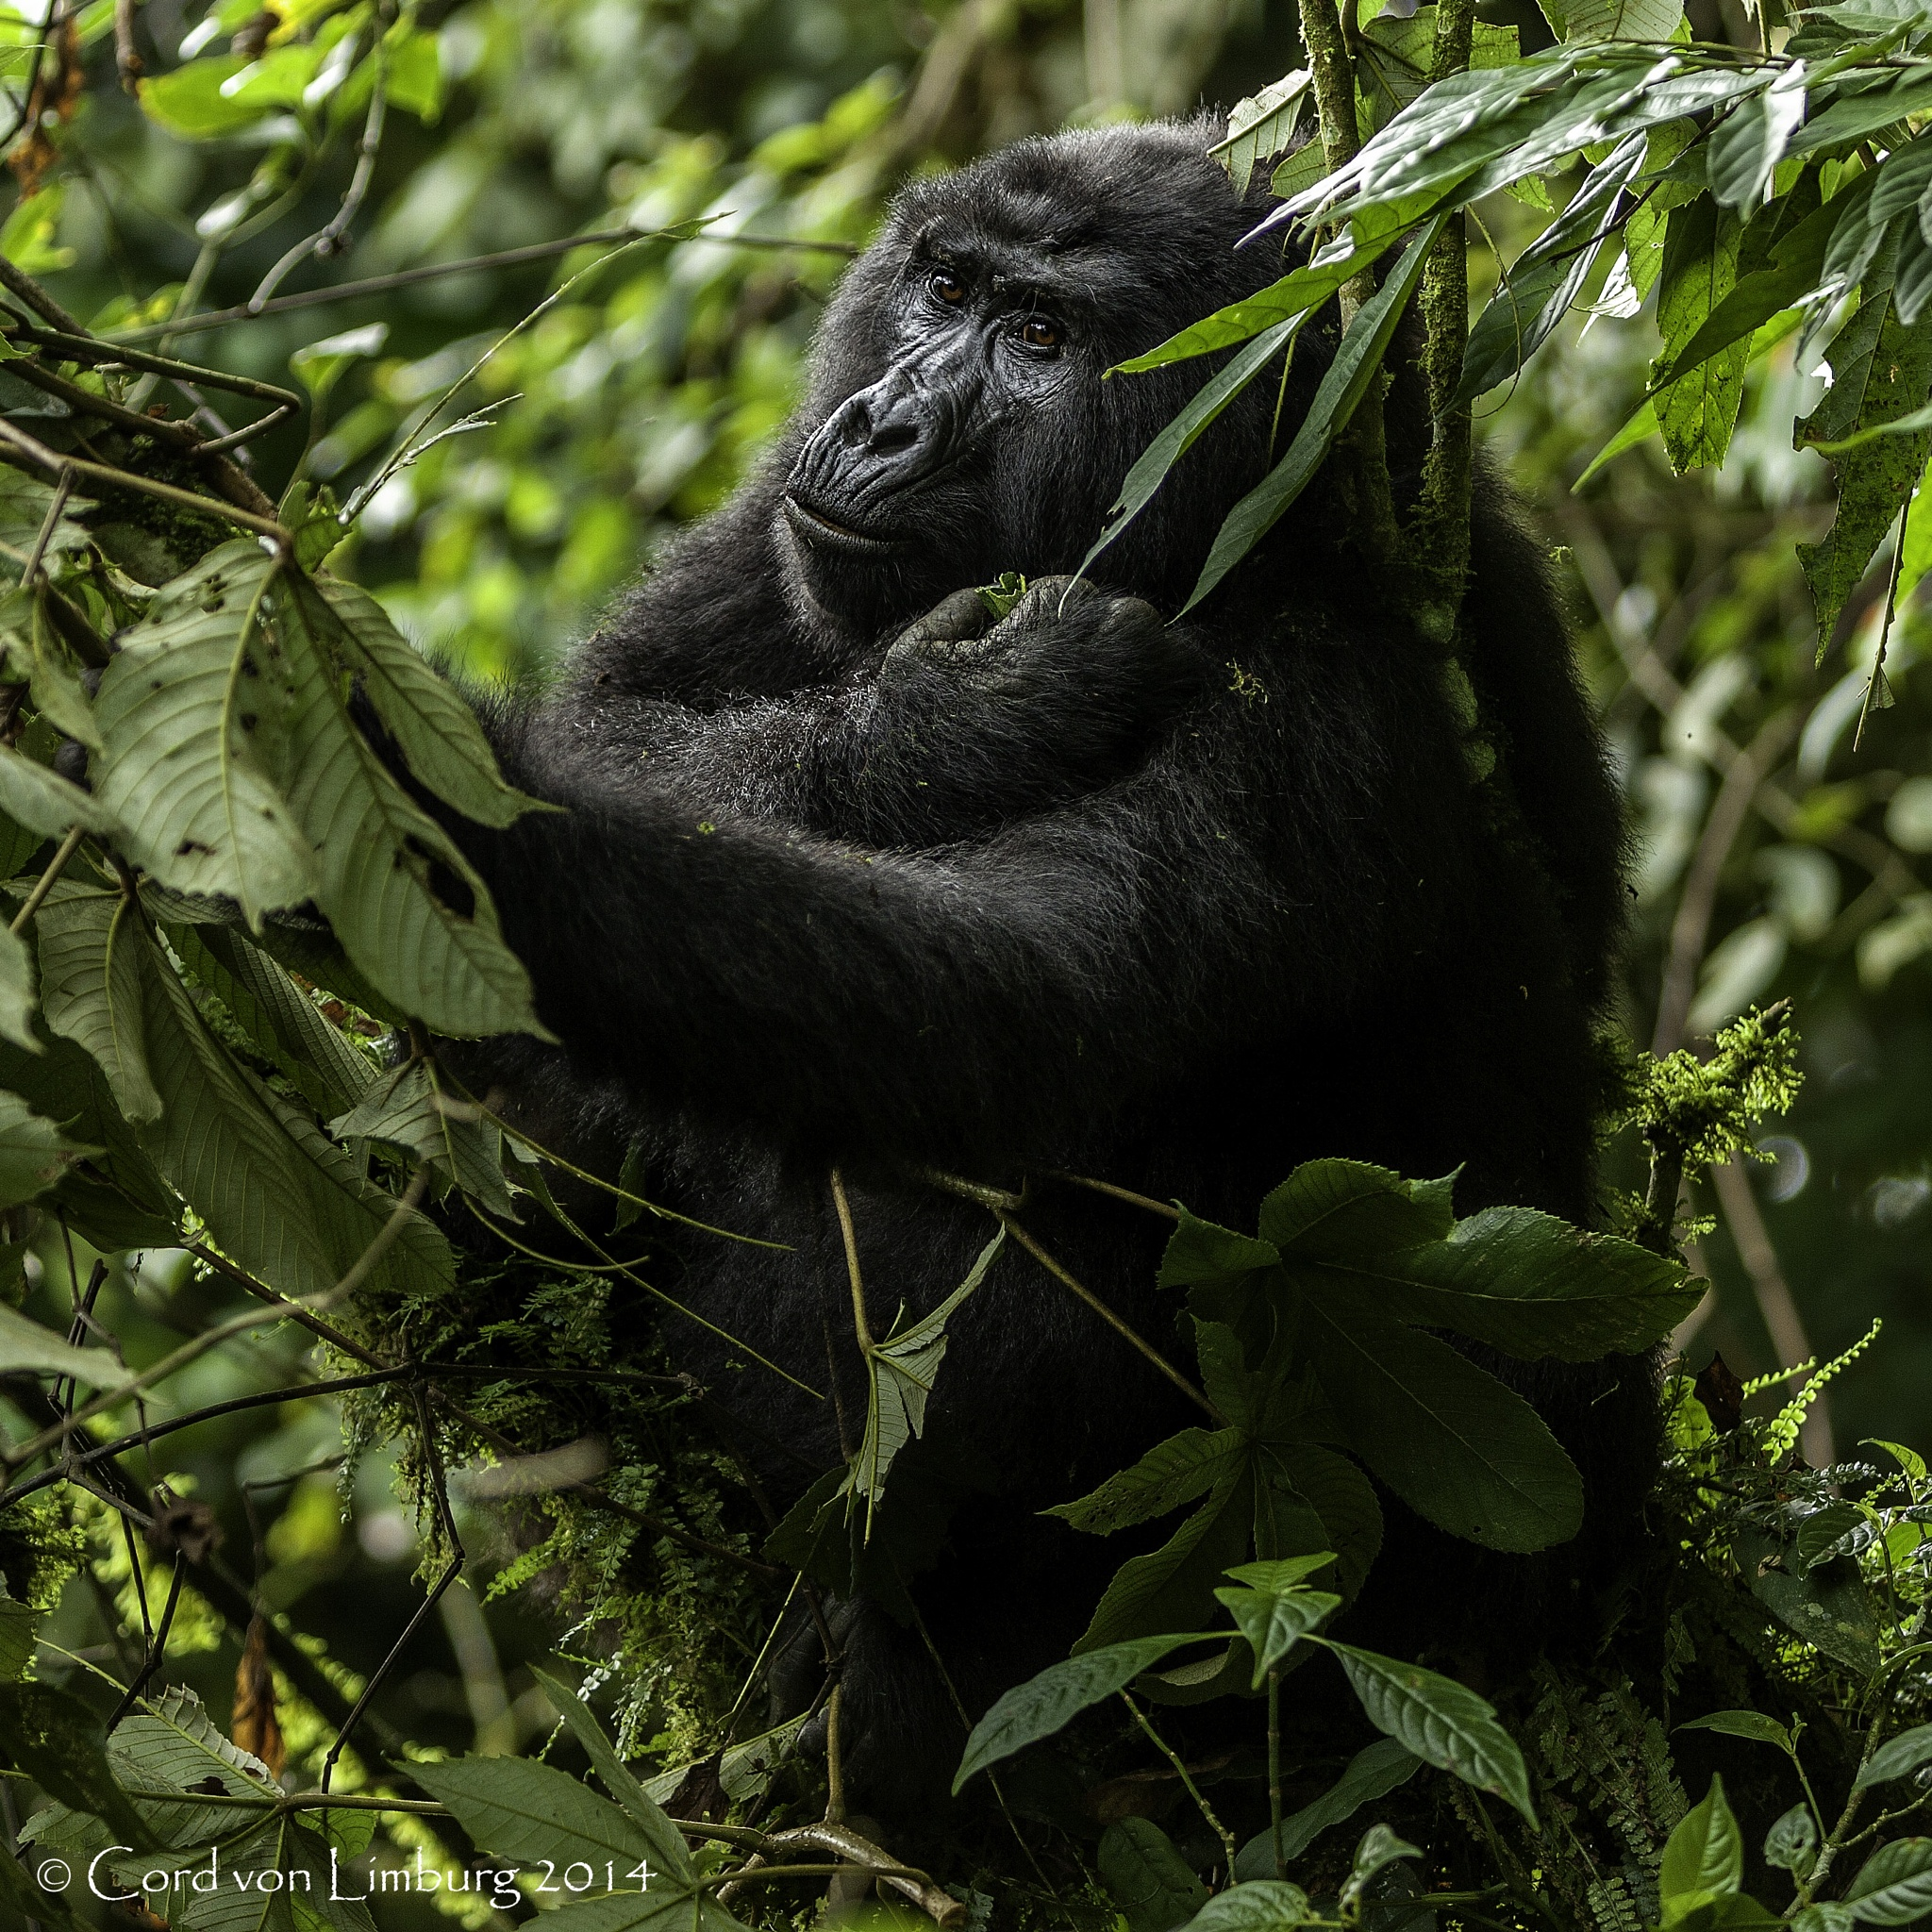 Gorilla Lady eating in the trees by Cord von Limburg